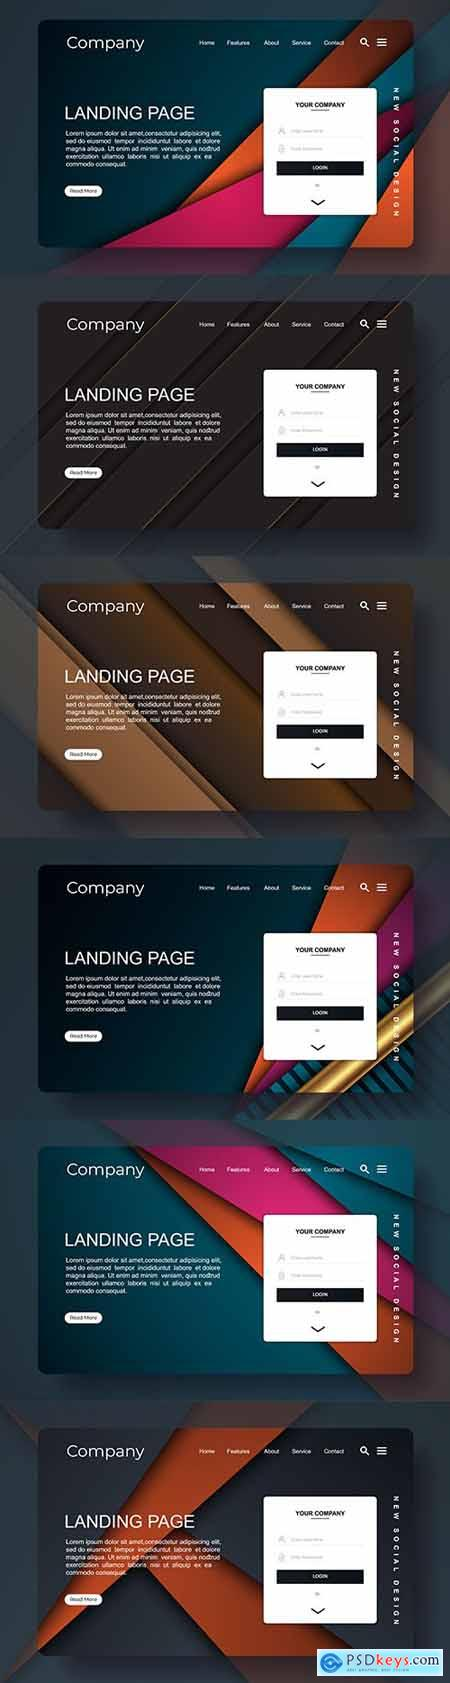 Landing page with abstract background design template